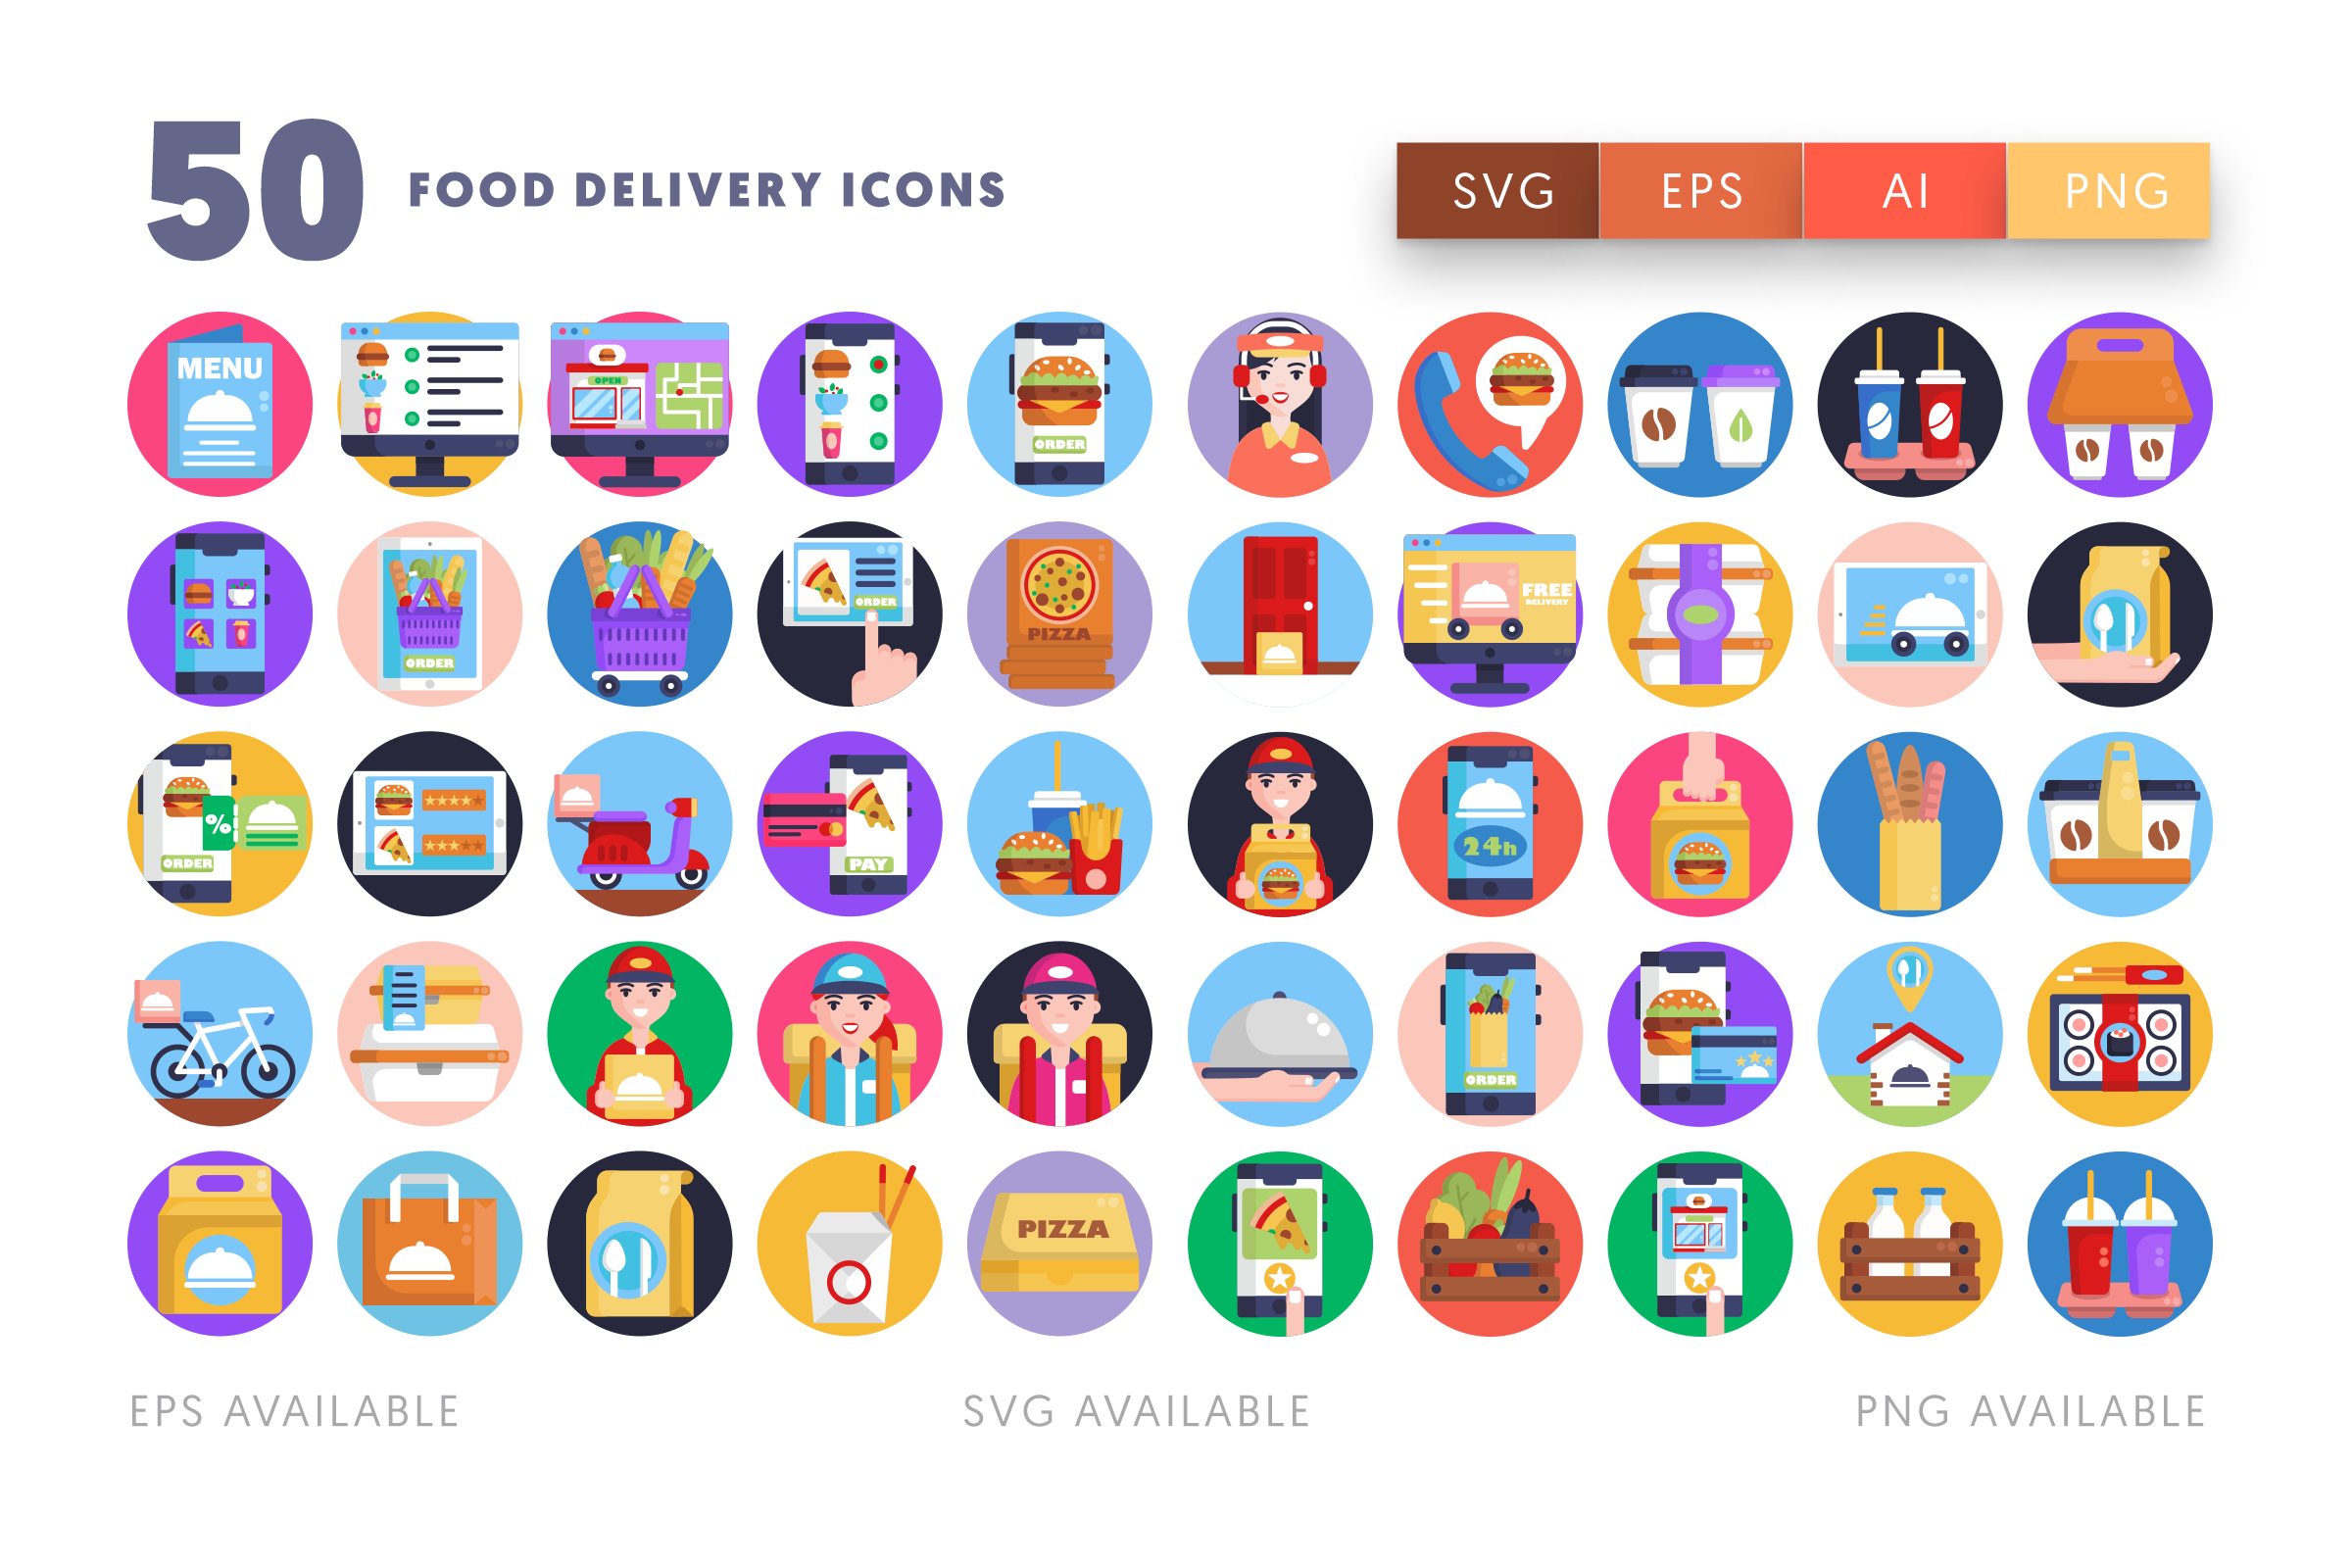 Food Delivery icons png/svg/eps